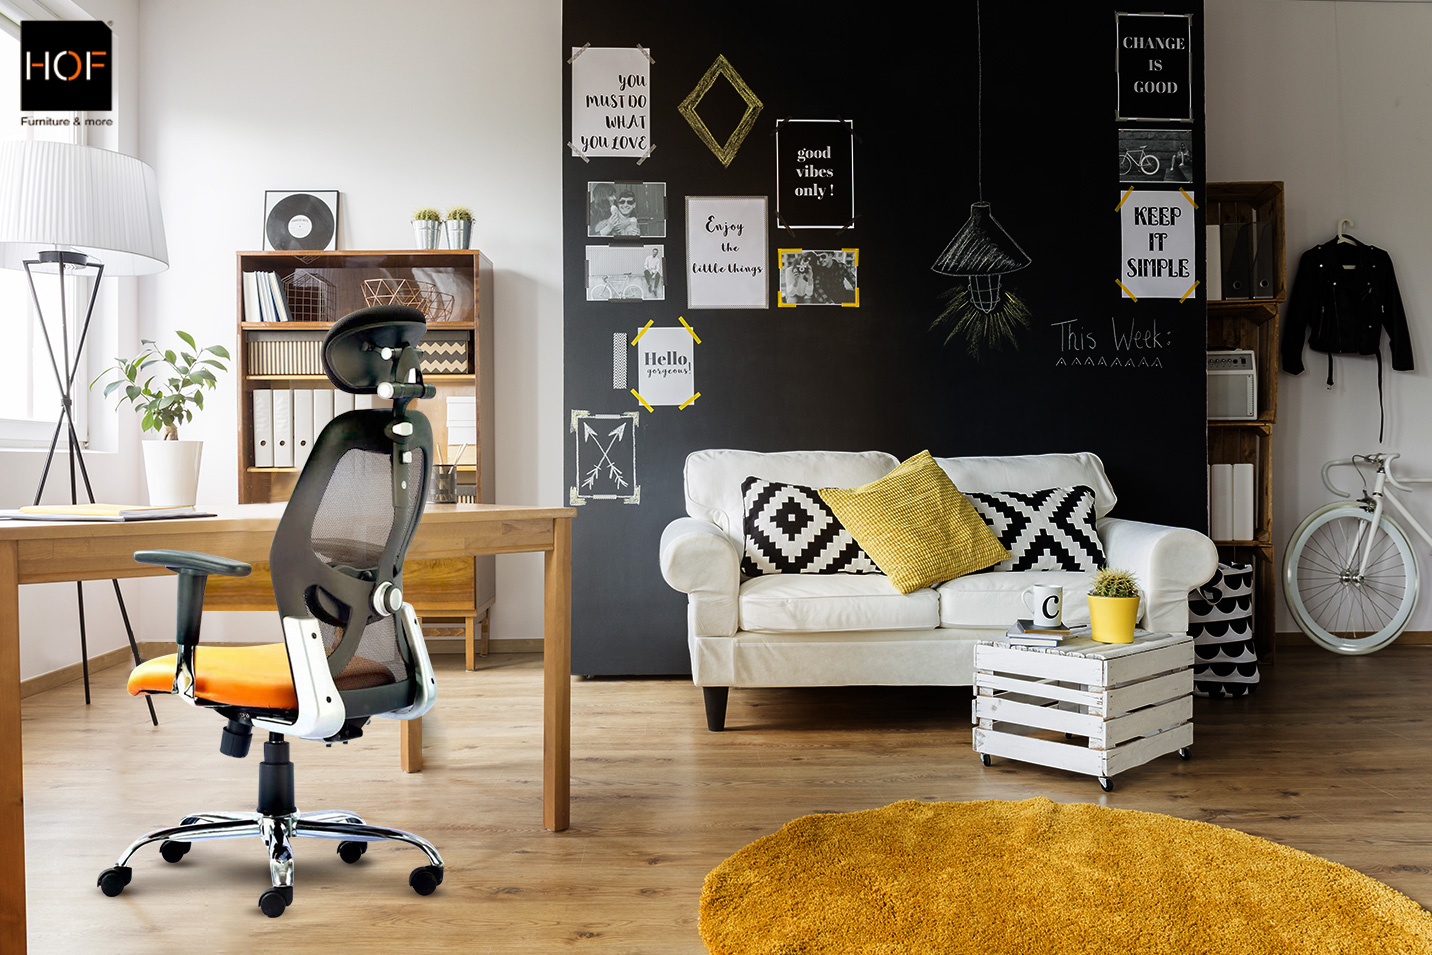 Creatively Adorn Your Home With Premium Chairs And Decor Pieces Hof